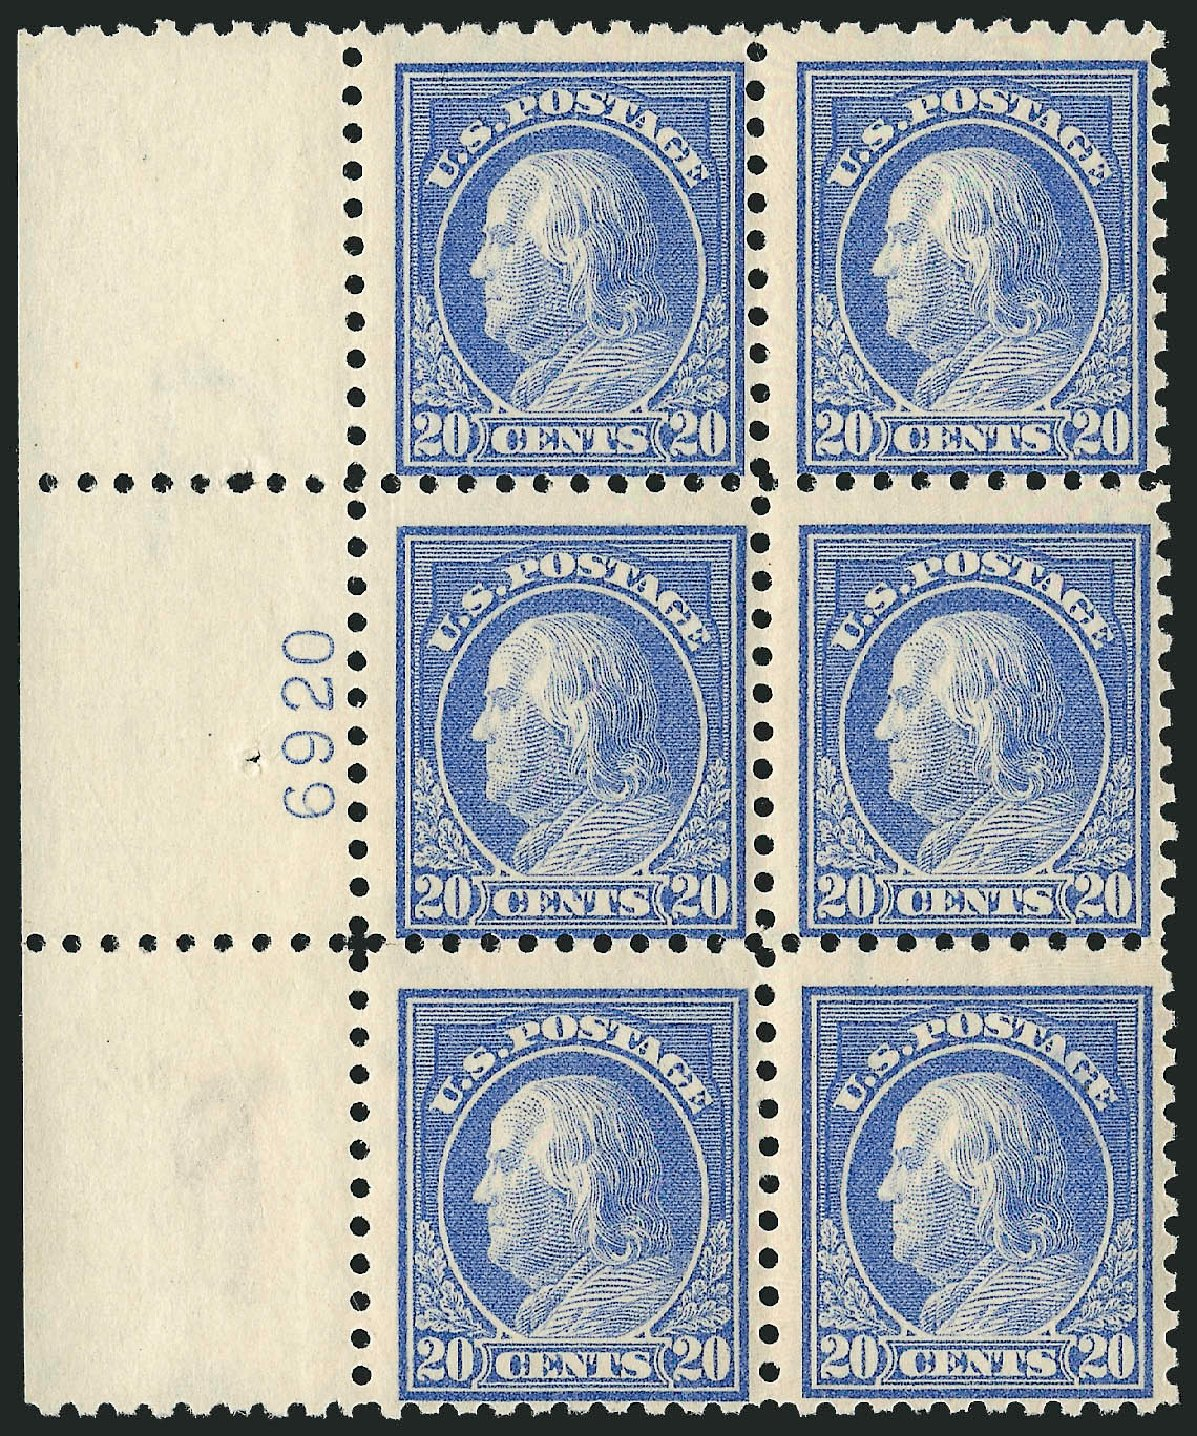 Cost of US Stamps Scott Catalog 438 - 20c 1914 Franklin Perf 10. Robert Siegel Auction Galleries, Apr 2015, Sale 1096, Lot 682